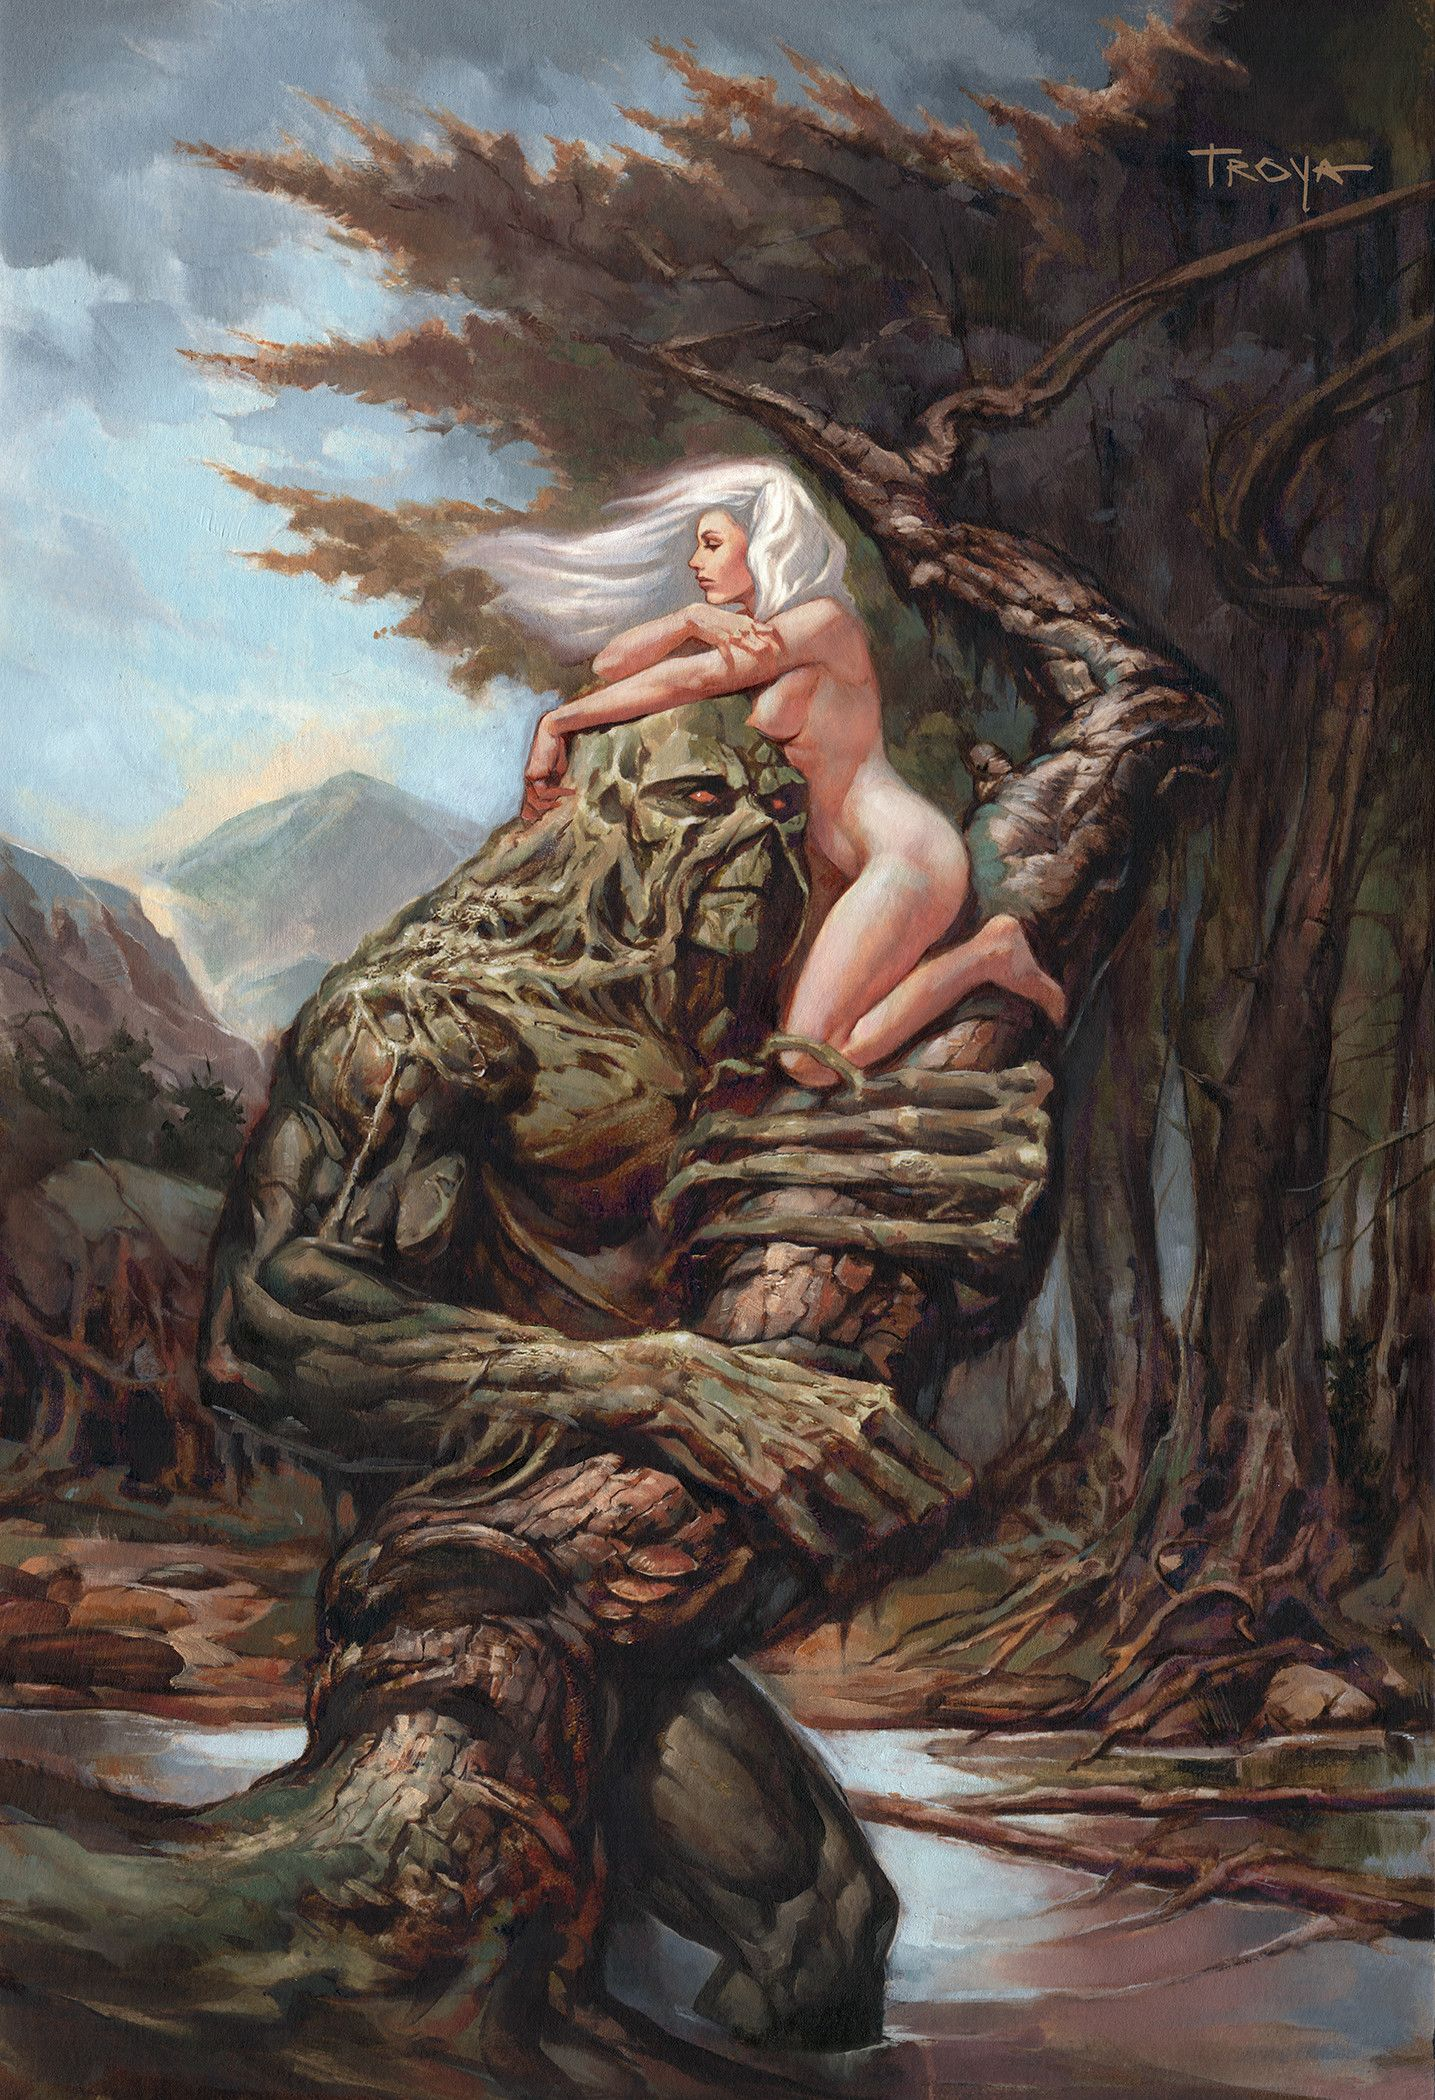 Swamp Thing and Abby rework, Lucas Troya